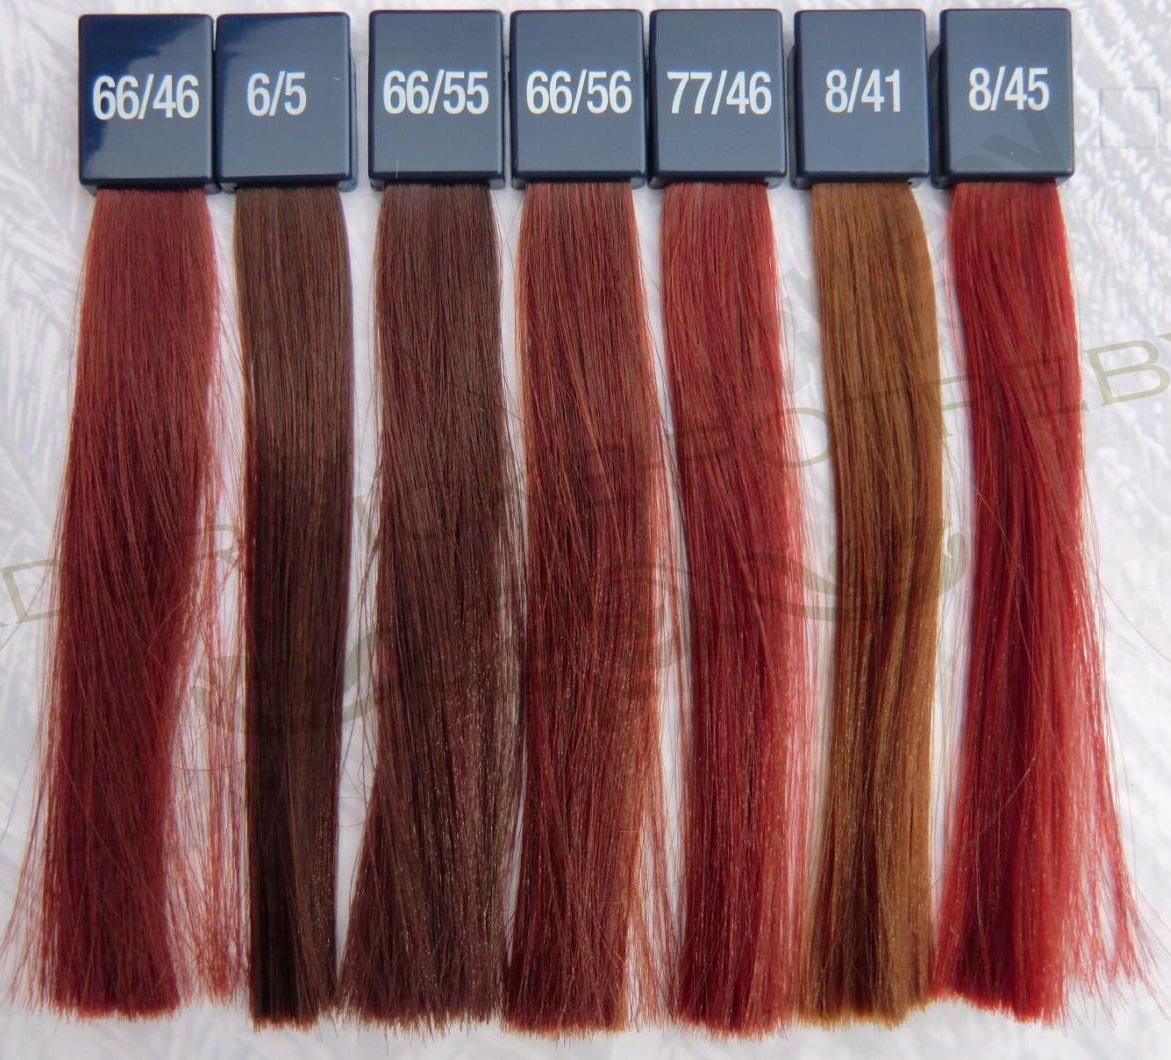 Wella Koleston Vibrant Reds Colorchart 3 With Images Hair